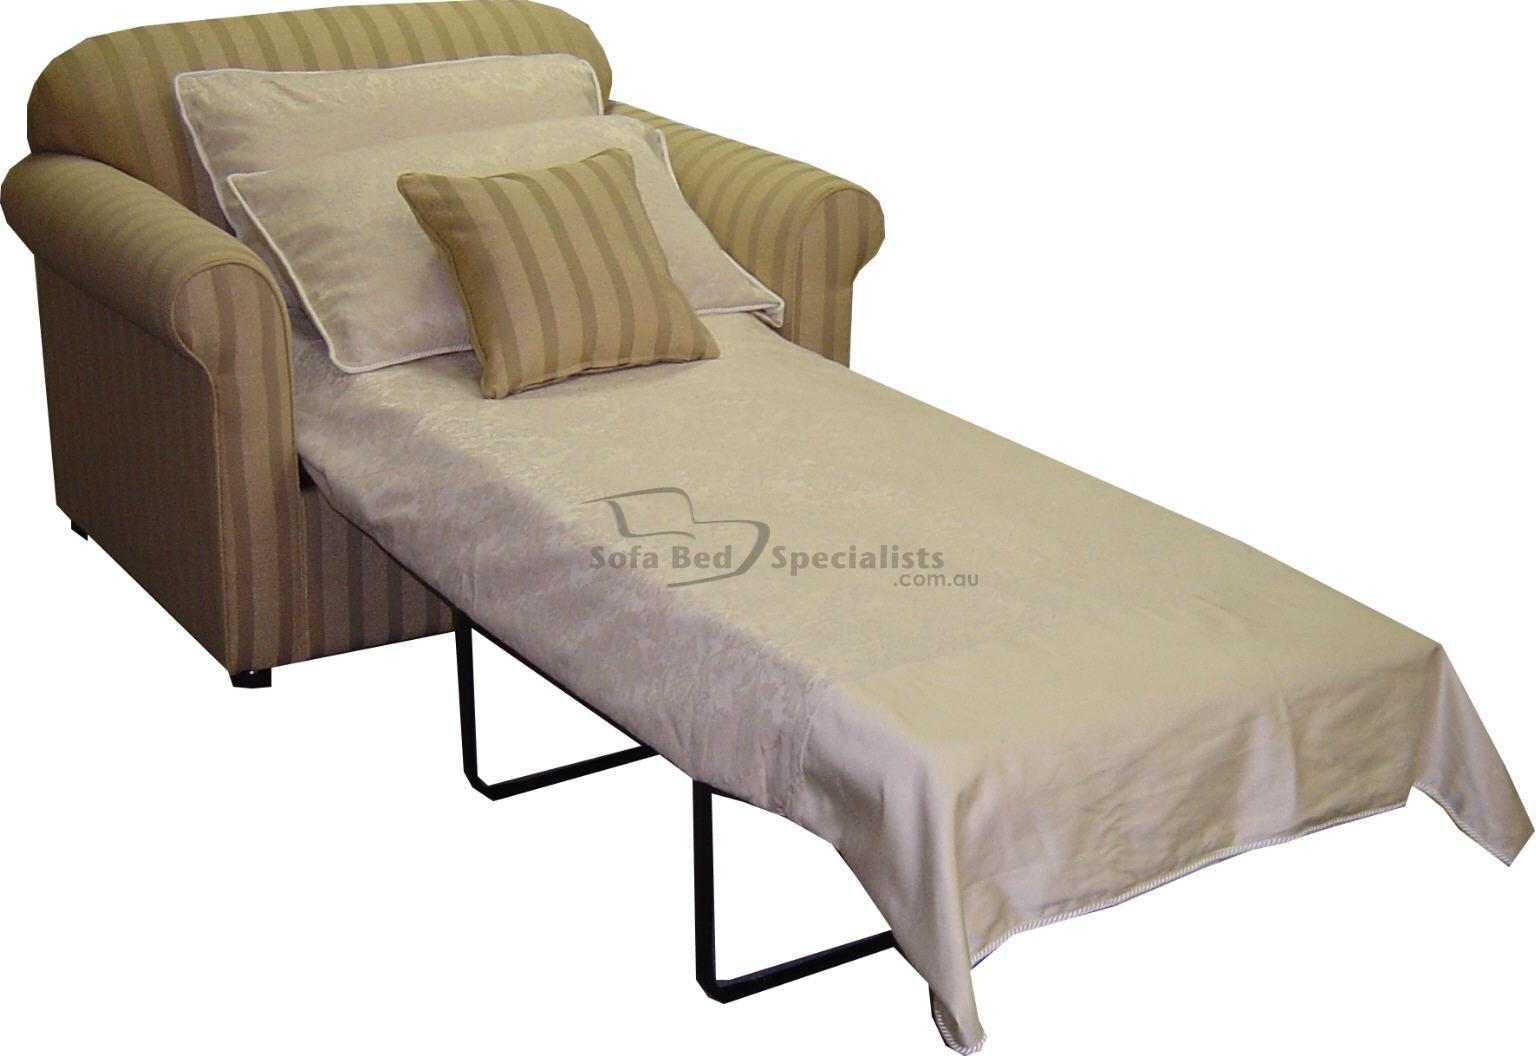 Chair sofabed victoria sofa bed specialists Hide a bed couch ikea